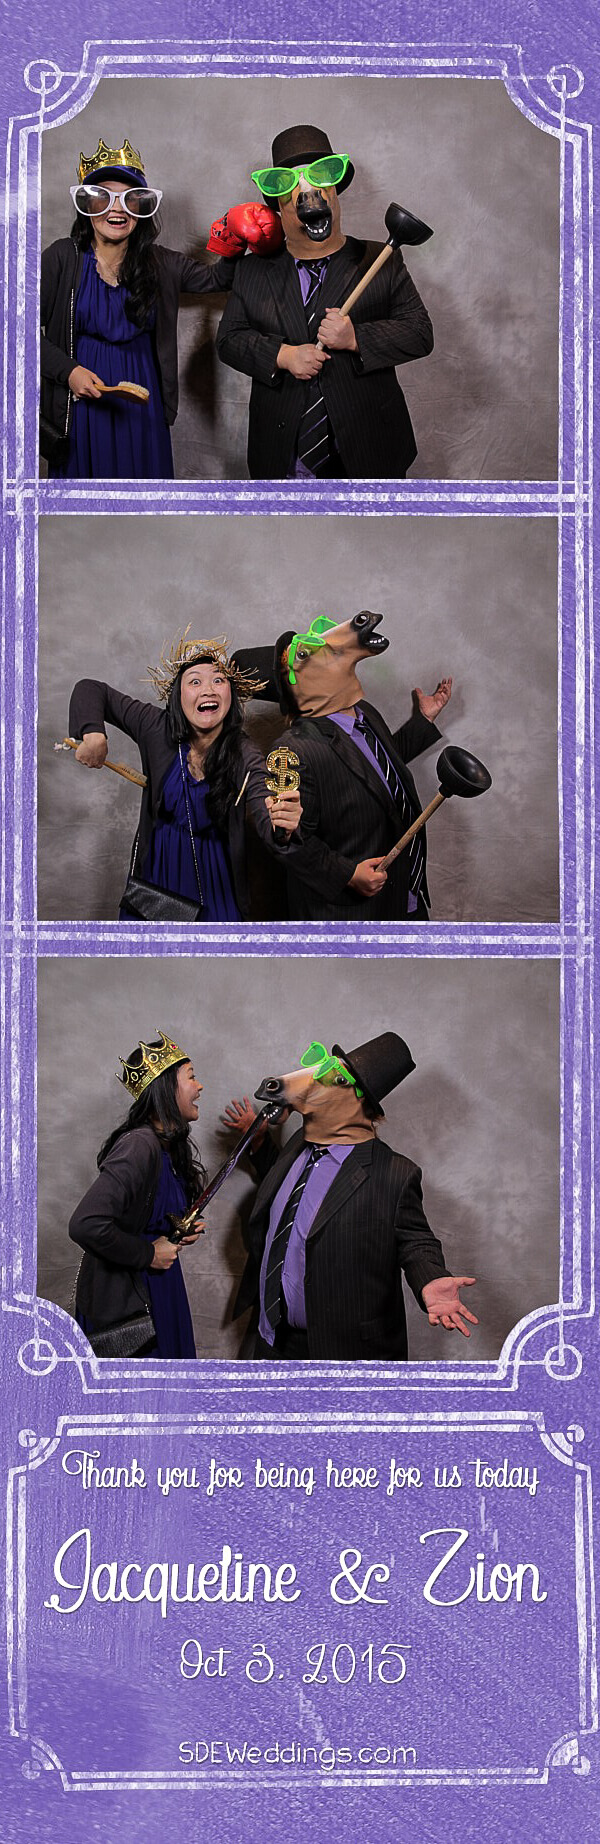 Toronto Richmond Hill Golf & Country Club Wedding Photo Booth Rental 1